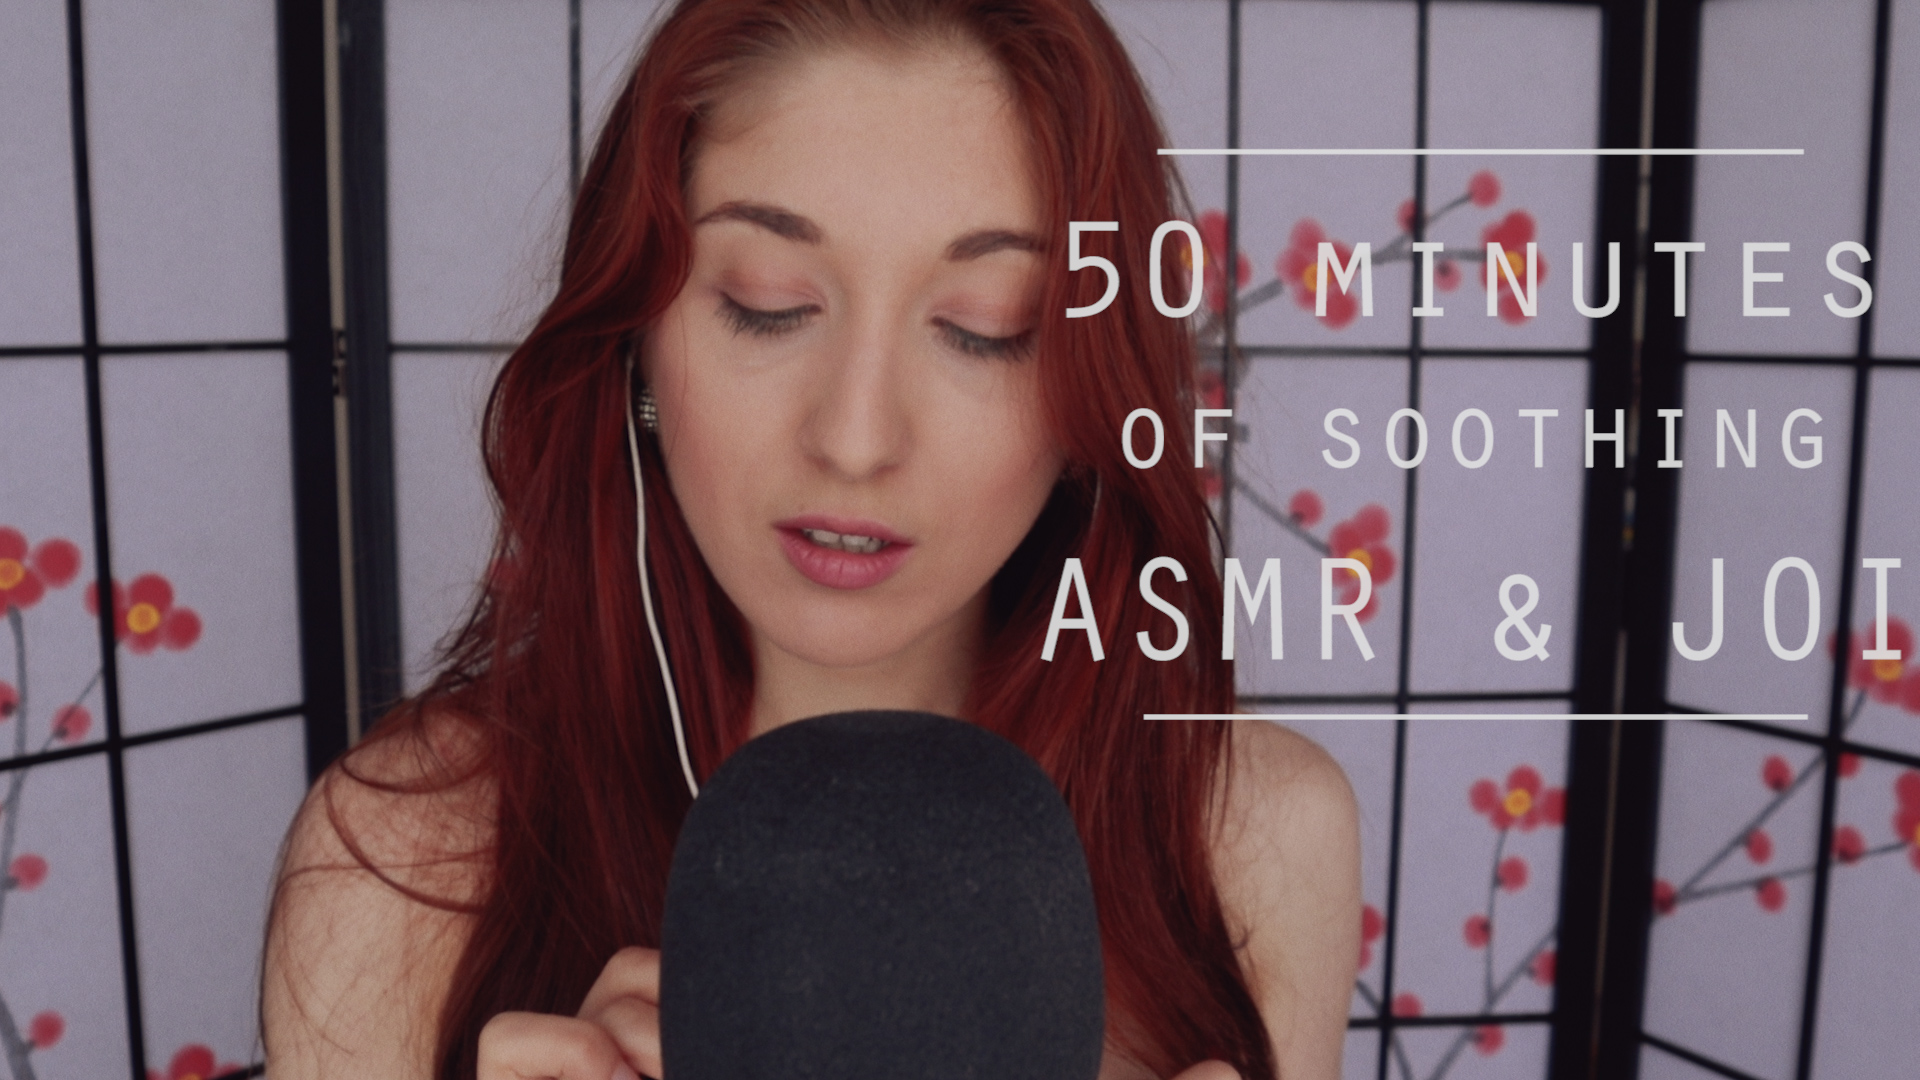 50 Minutes Of Soothing ASMR & JOI [Heart Coherence].